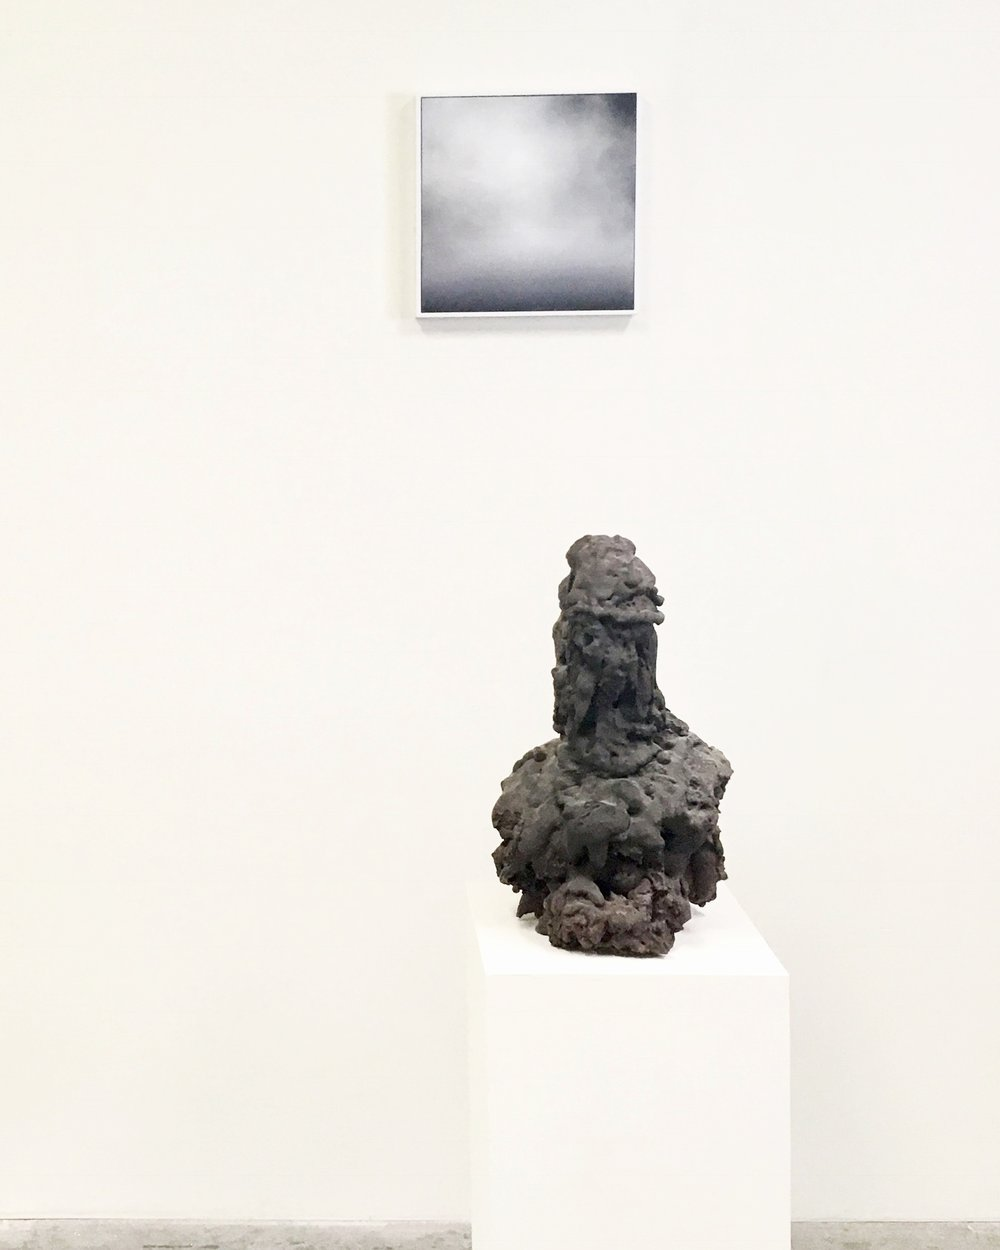 Installation View with Sculpture